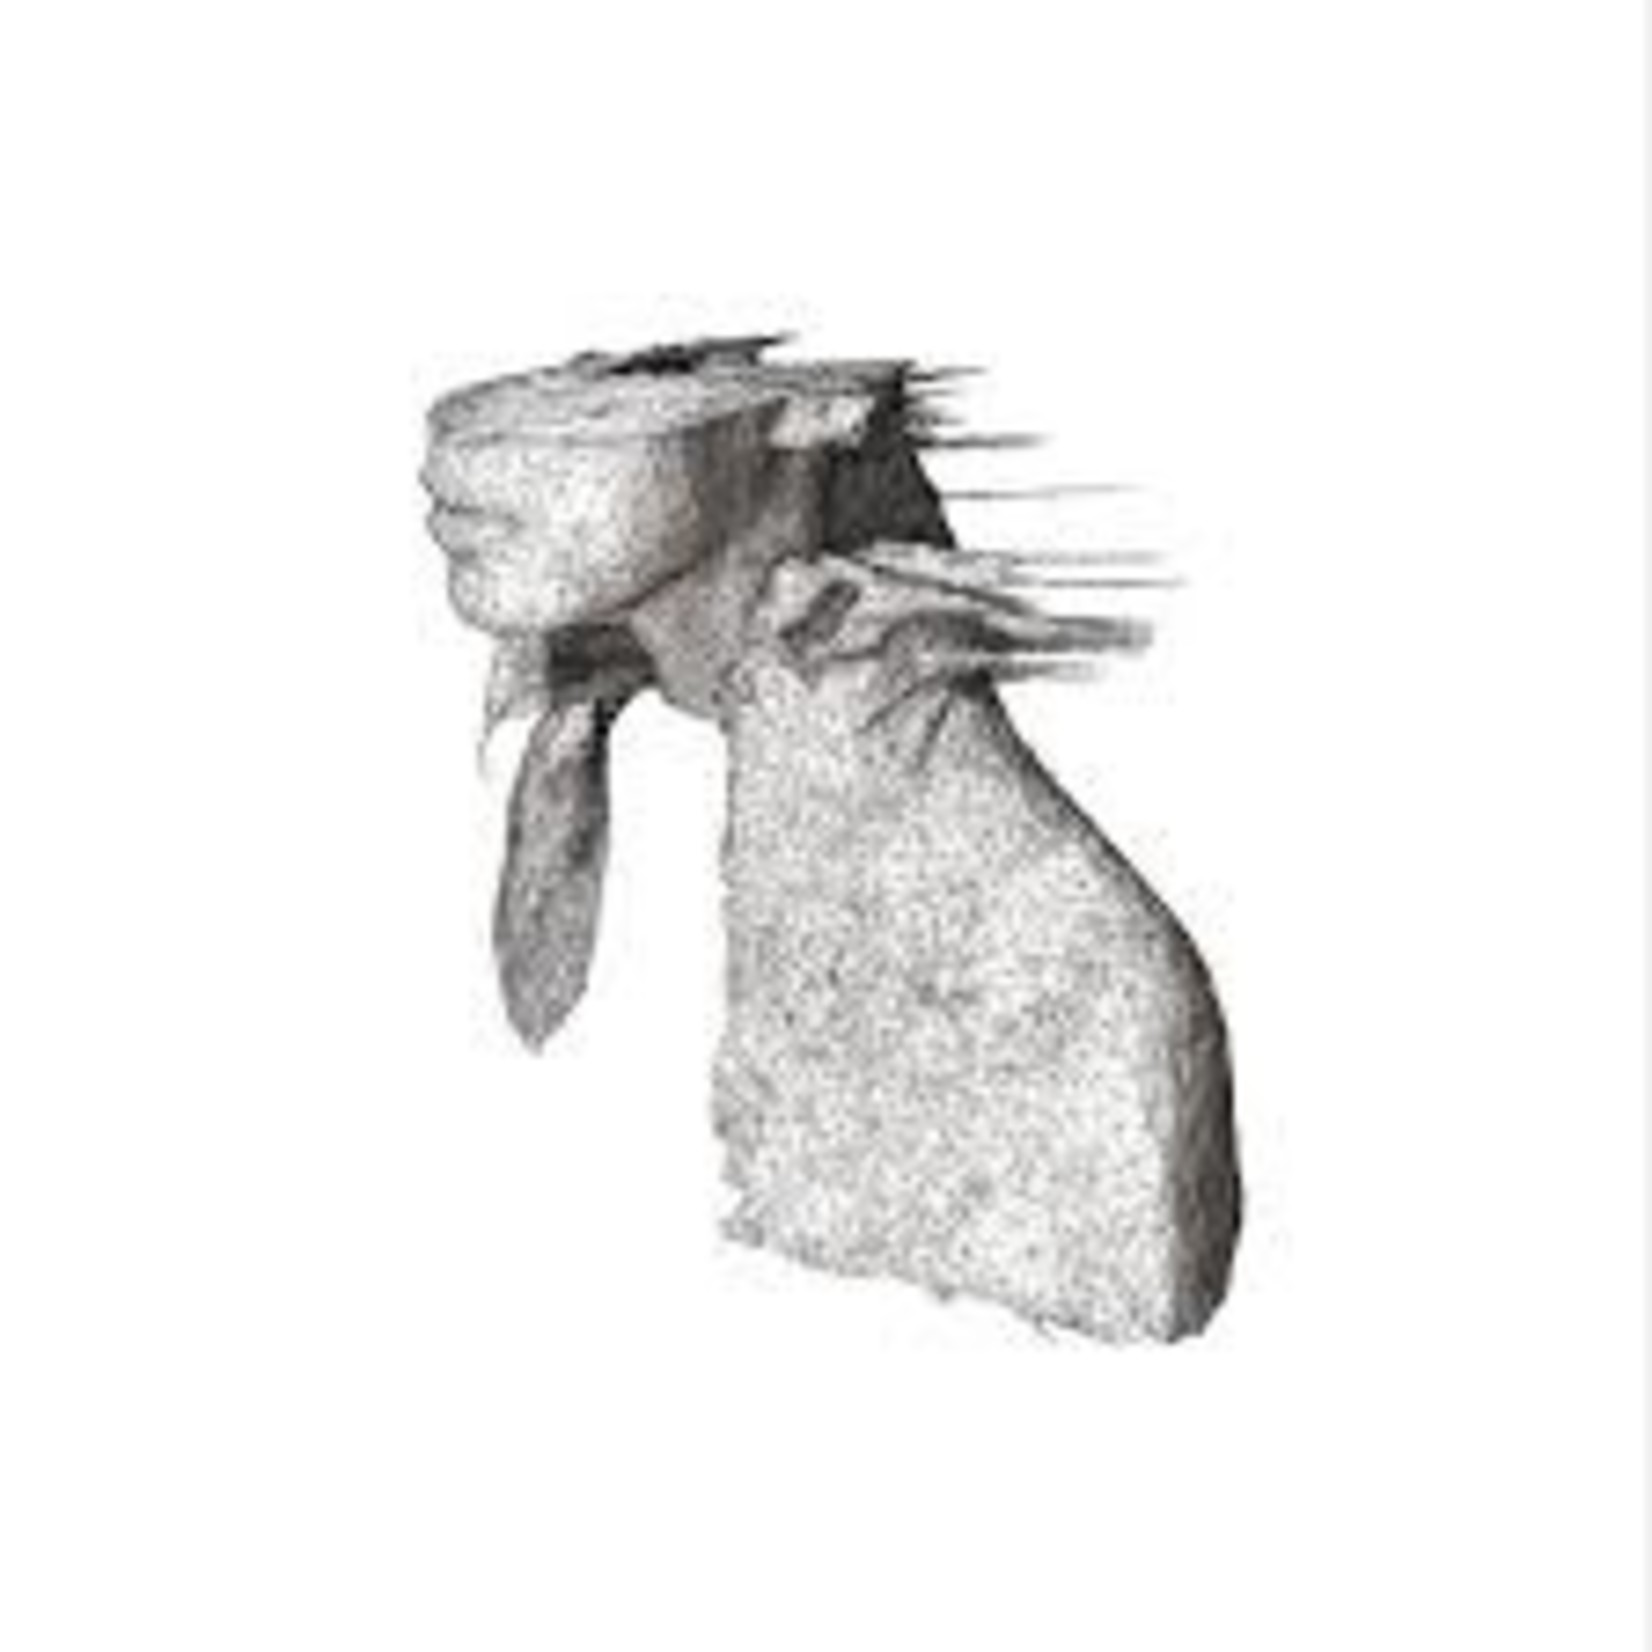 Vinyl Coldplay - A Rush Of Blood To The Head